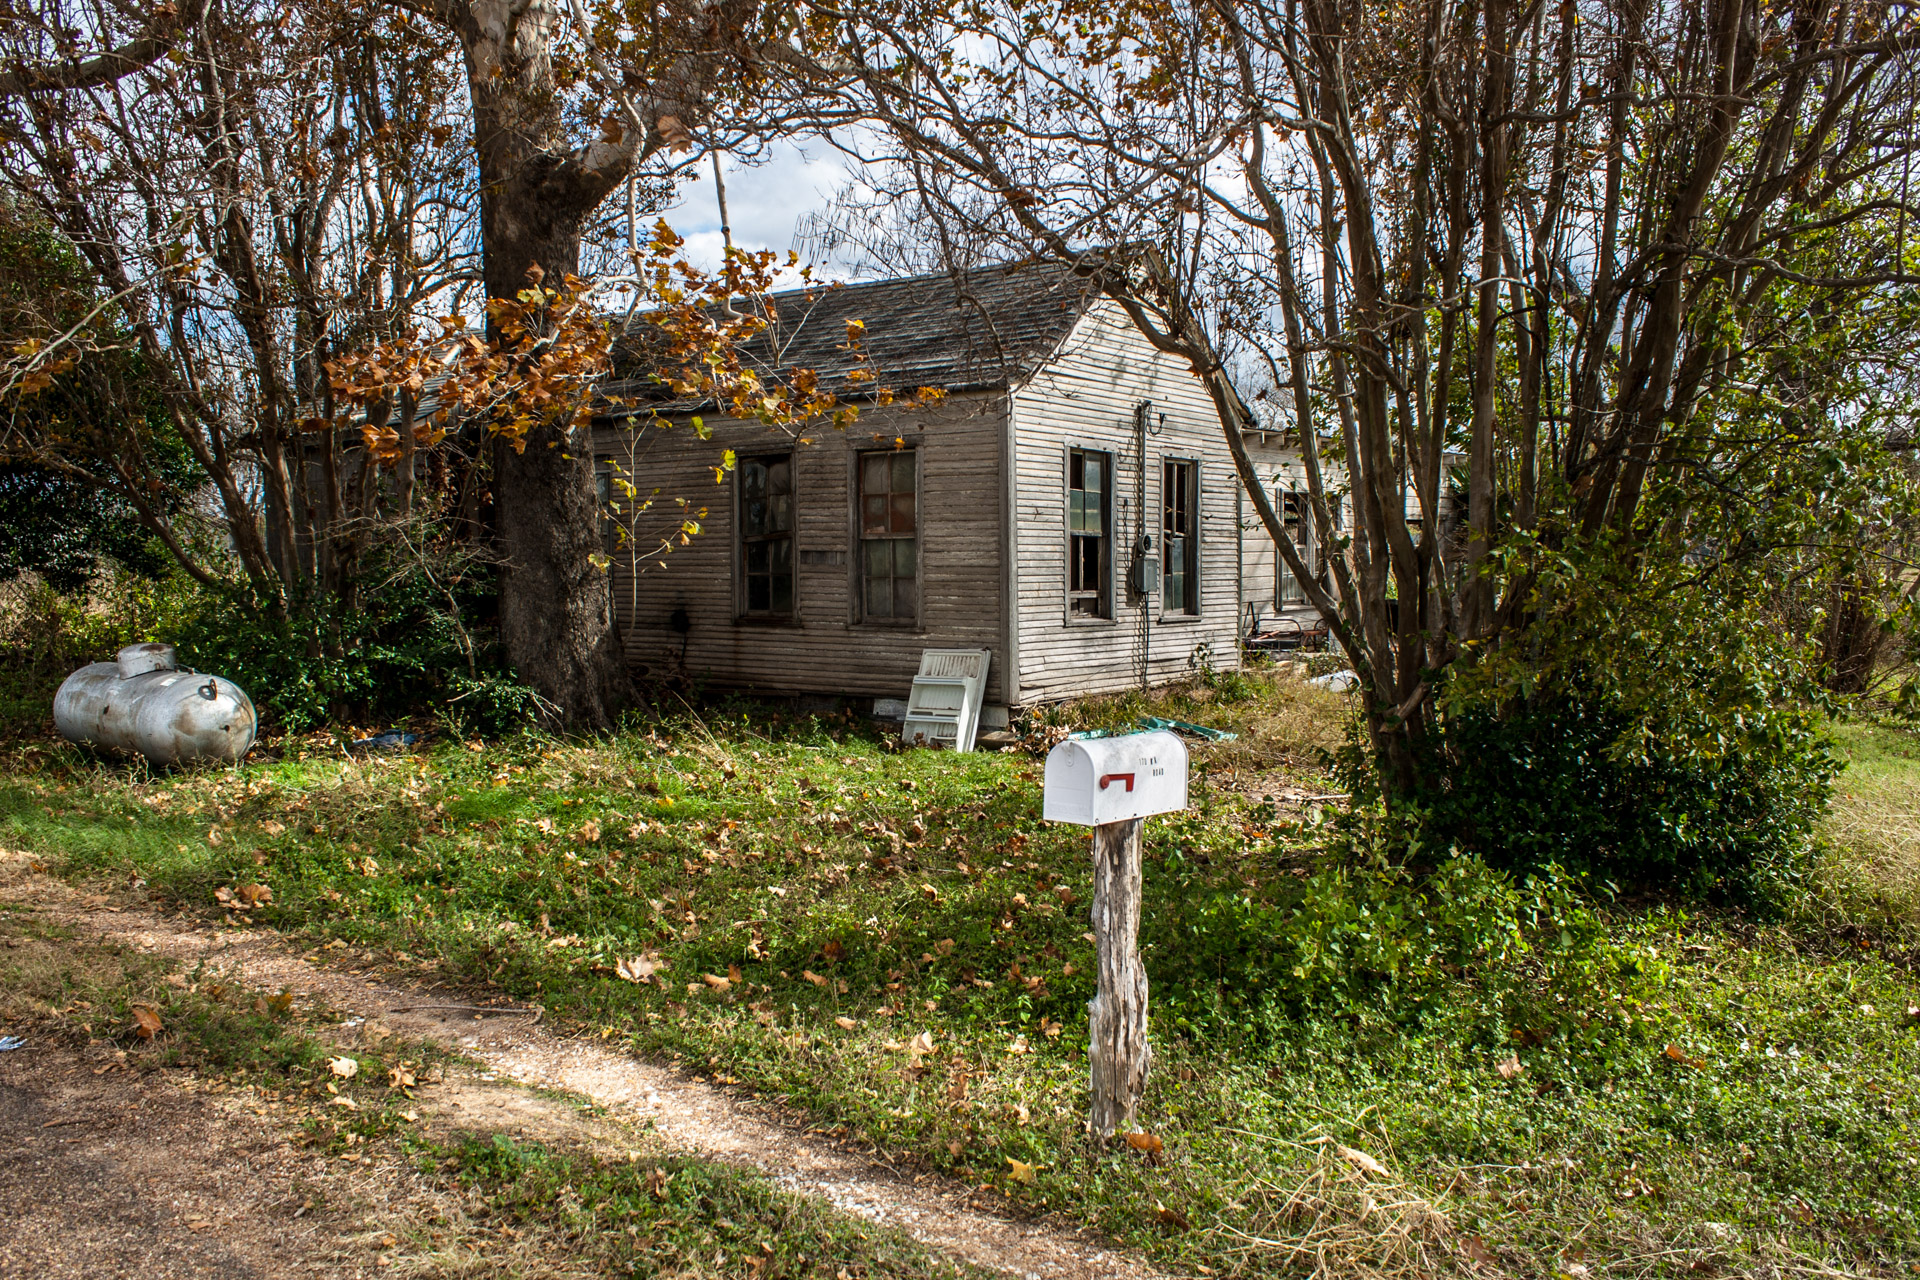 Smithville, Texas - The Sagging Middle House (angle far)